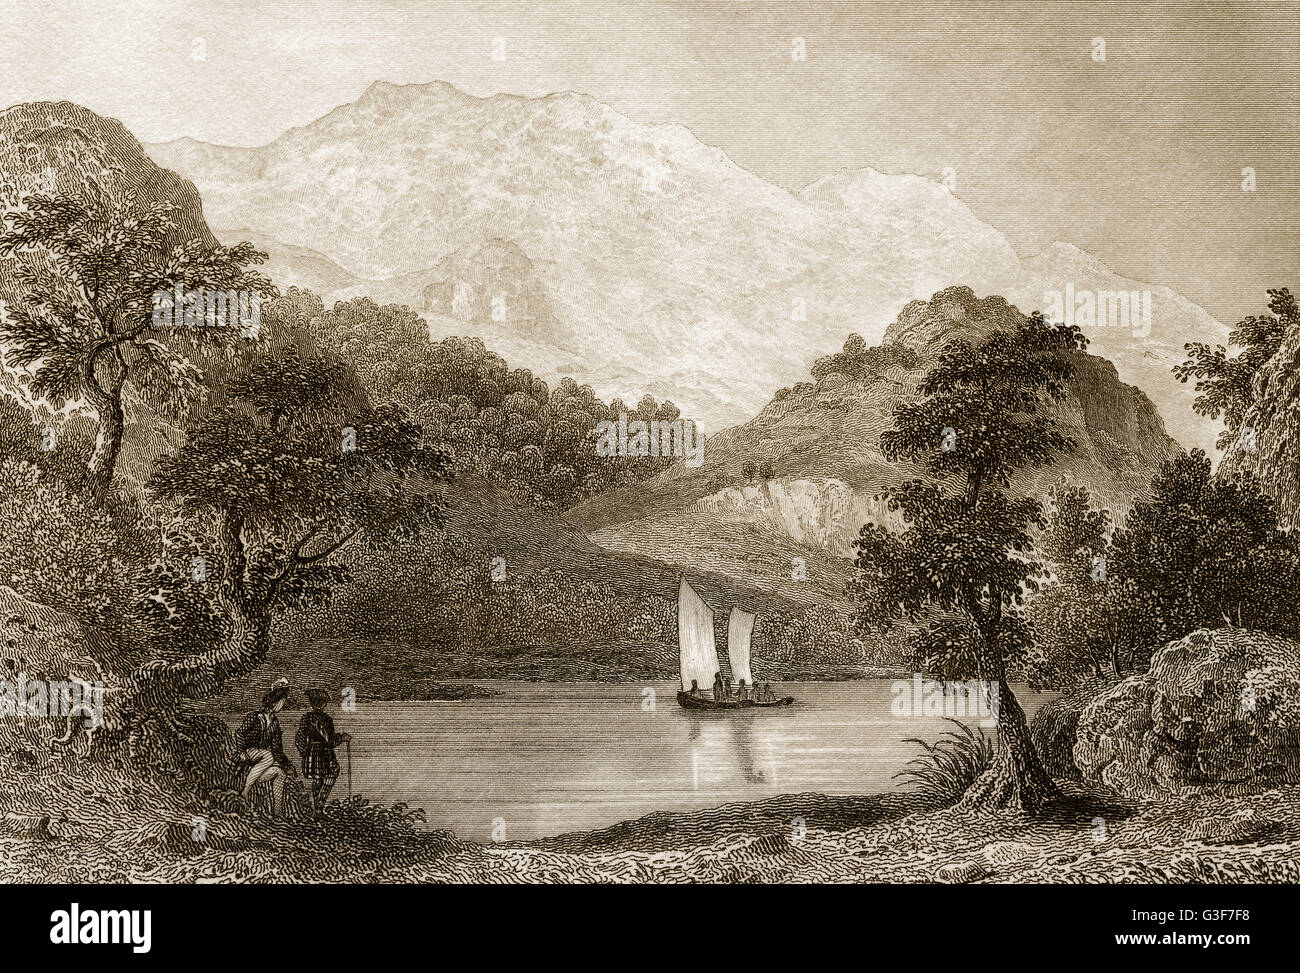 The Trossachs, a small woodland glen in the Stirling council area of Scotland, 19th century - Stock Image